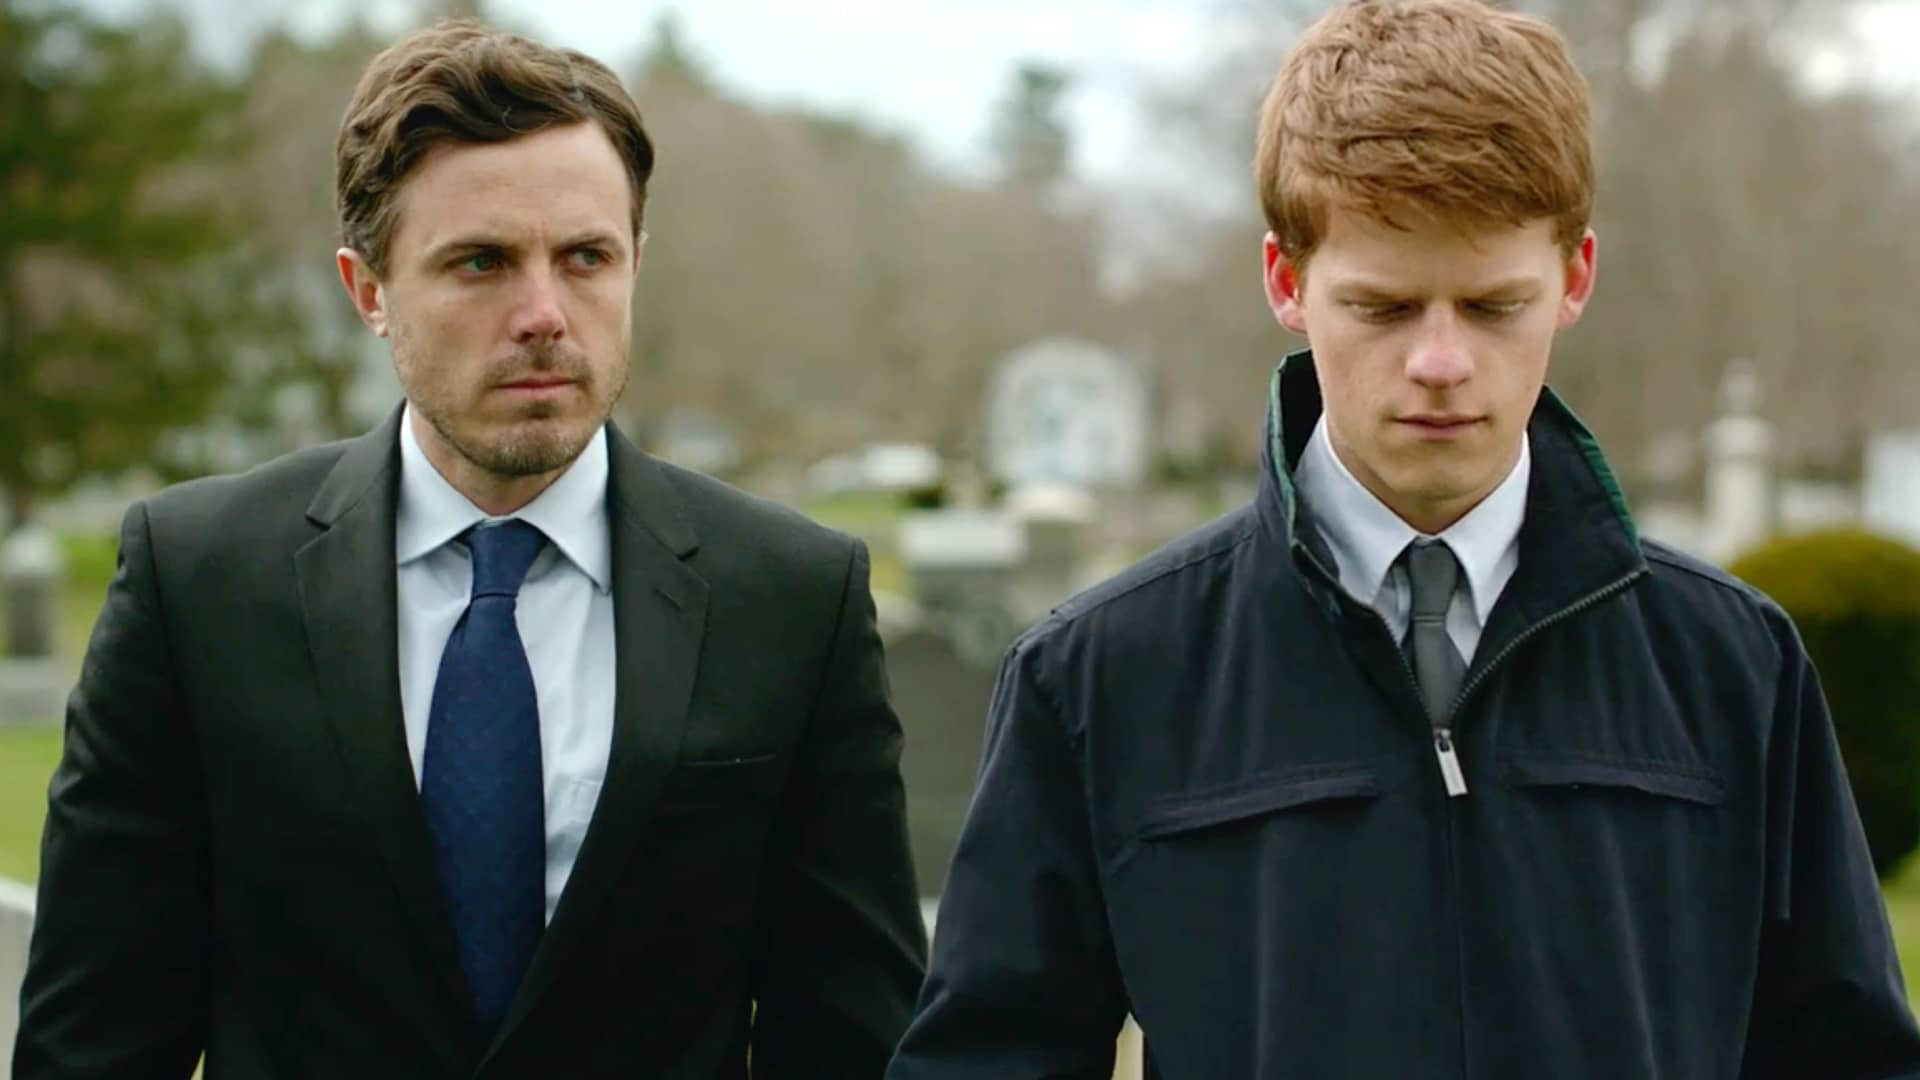 Manchester by the Sea, flashbacks